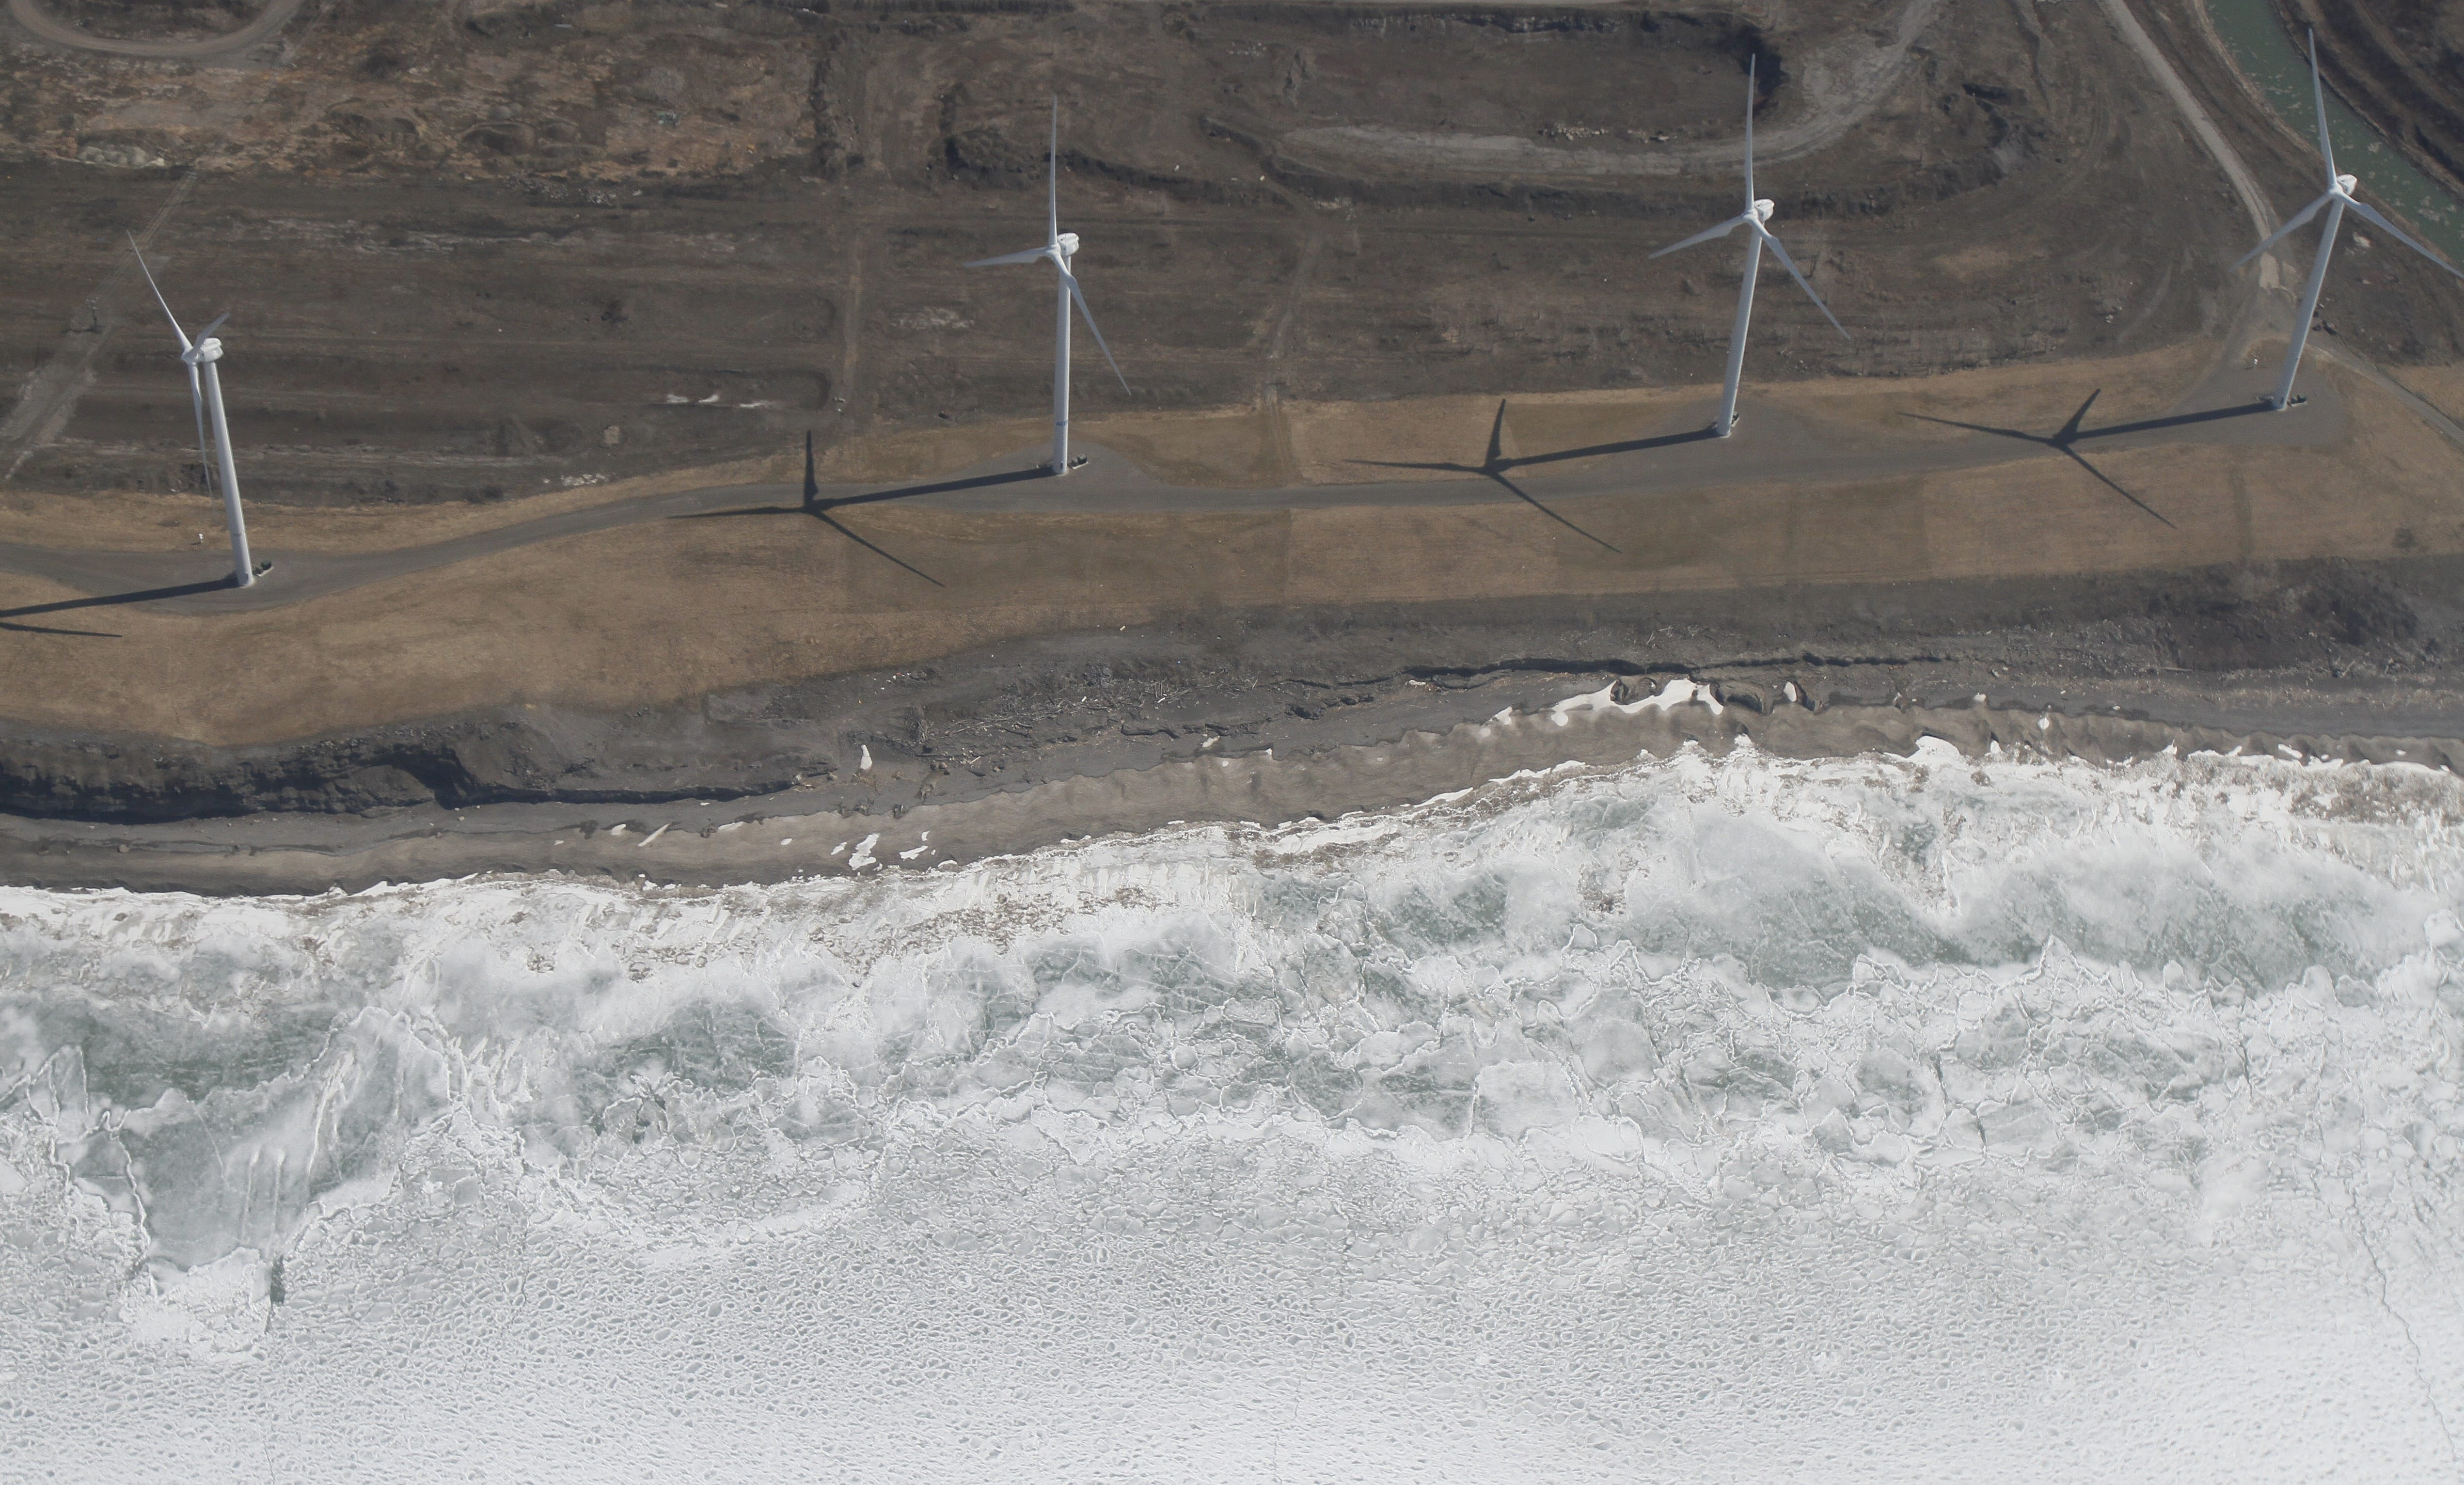 Ice rests on the beach near the wind turbines in Lackawanna along the lake shore on April 5, 2013.